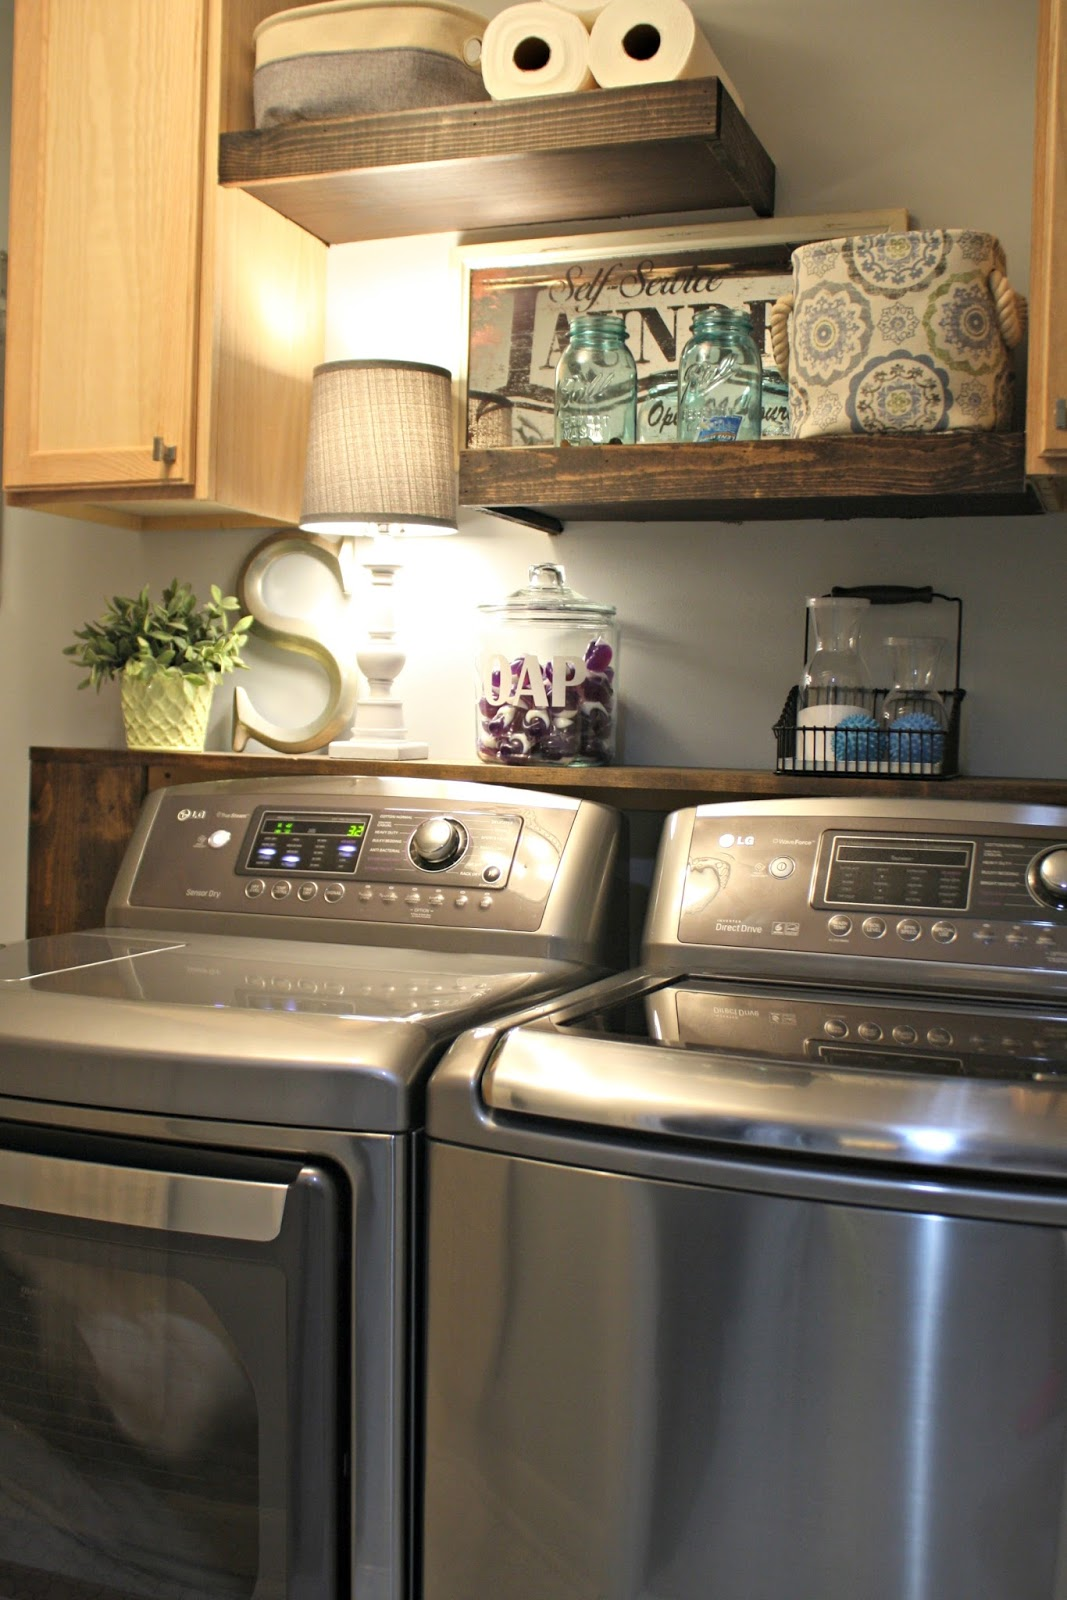 Lg Washer And Dryer Review Four Years Later From Thrifty